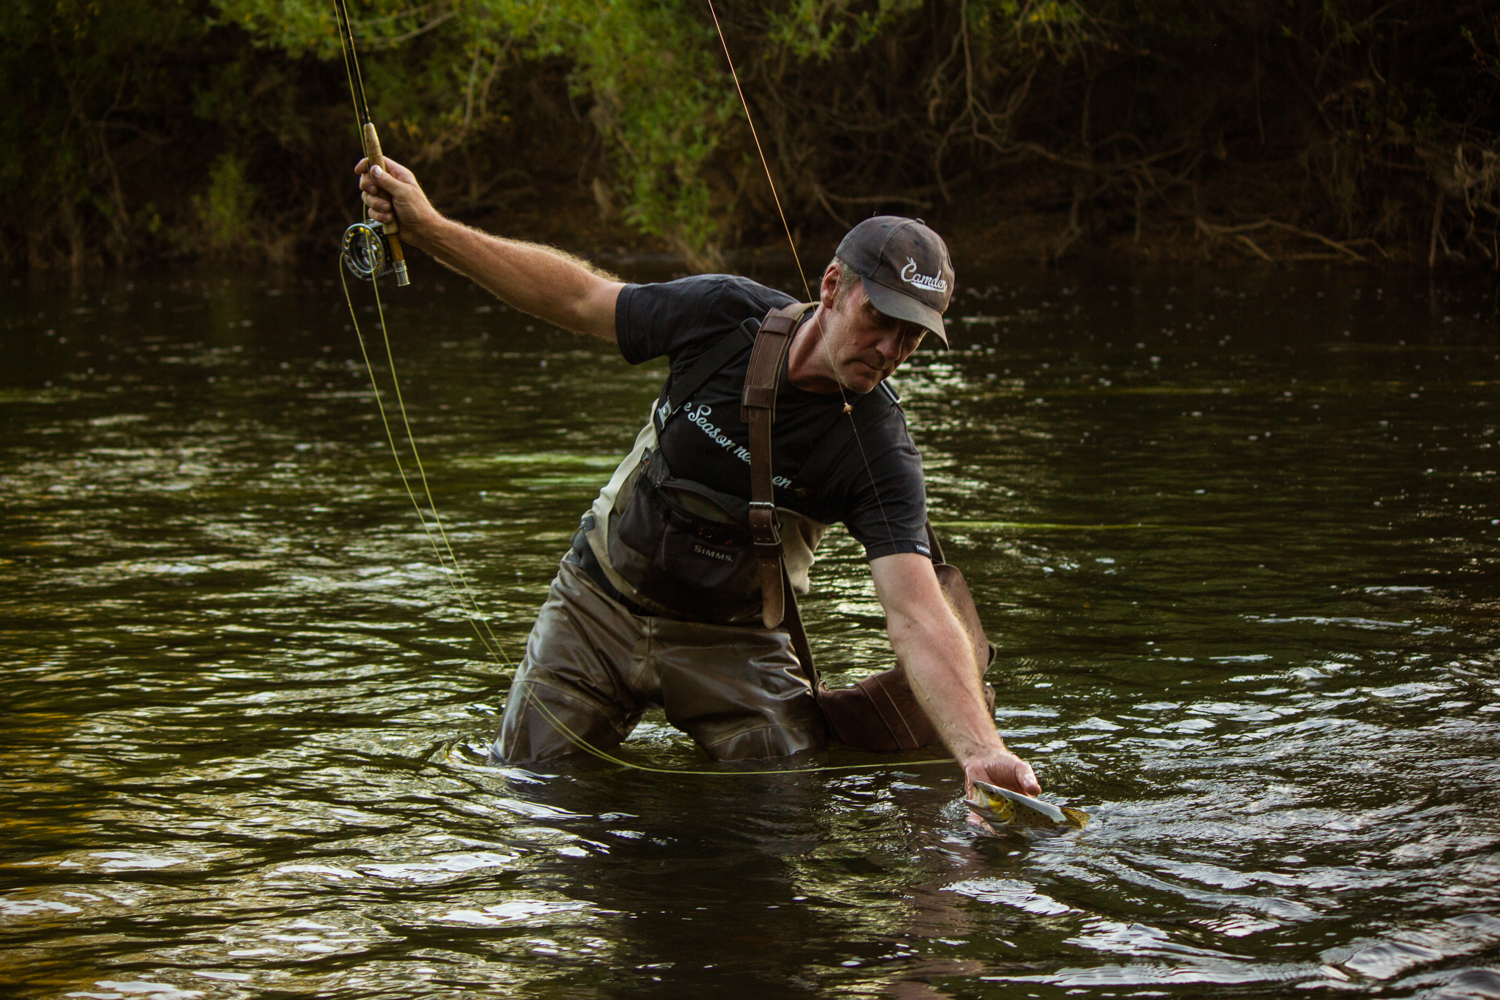 Paul hauling one out of the South Esk.